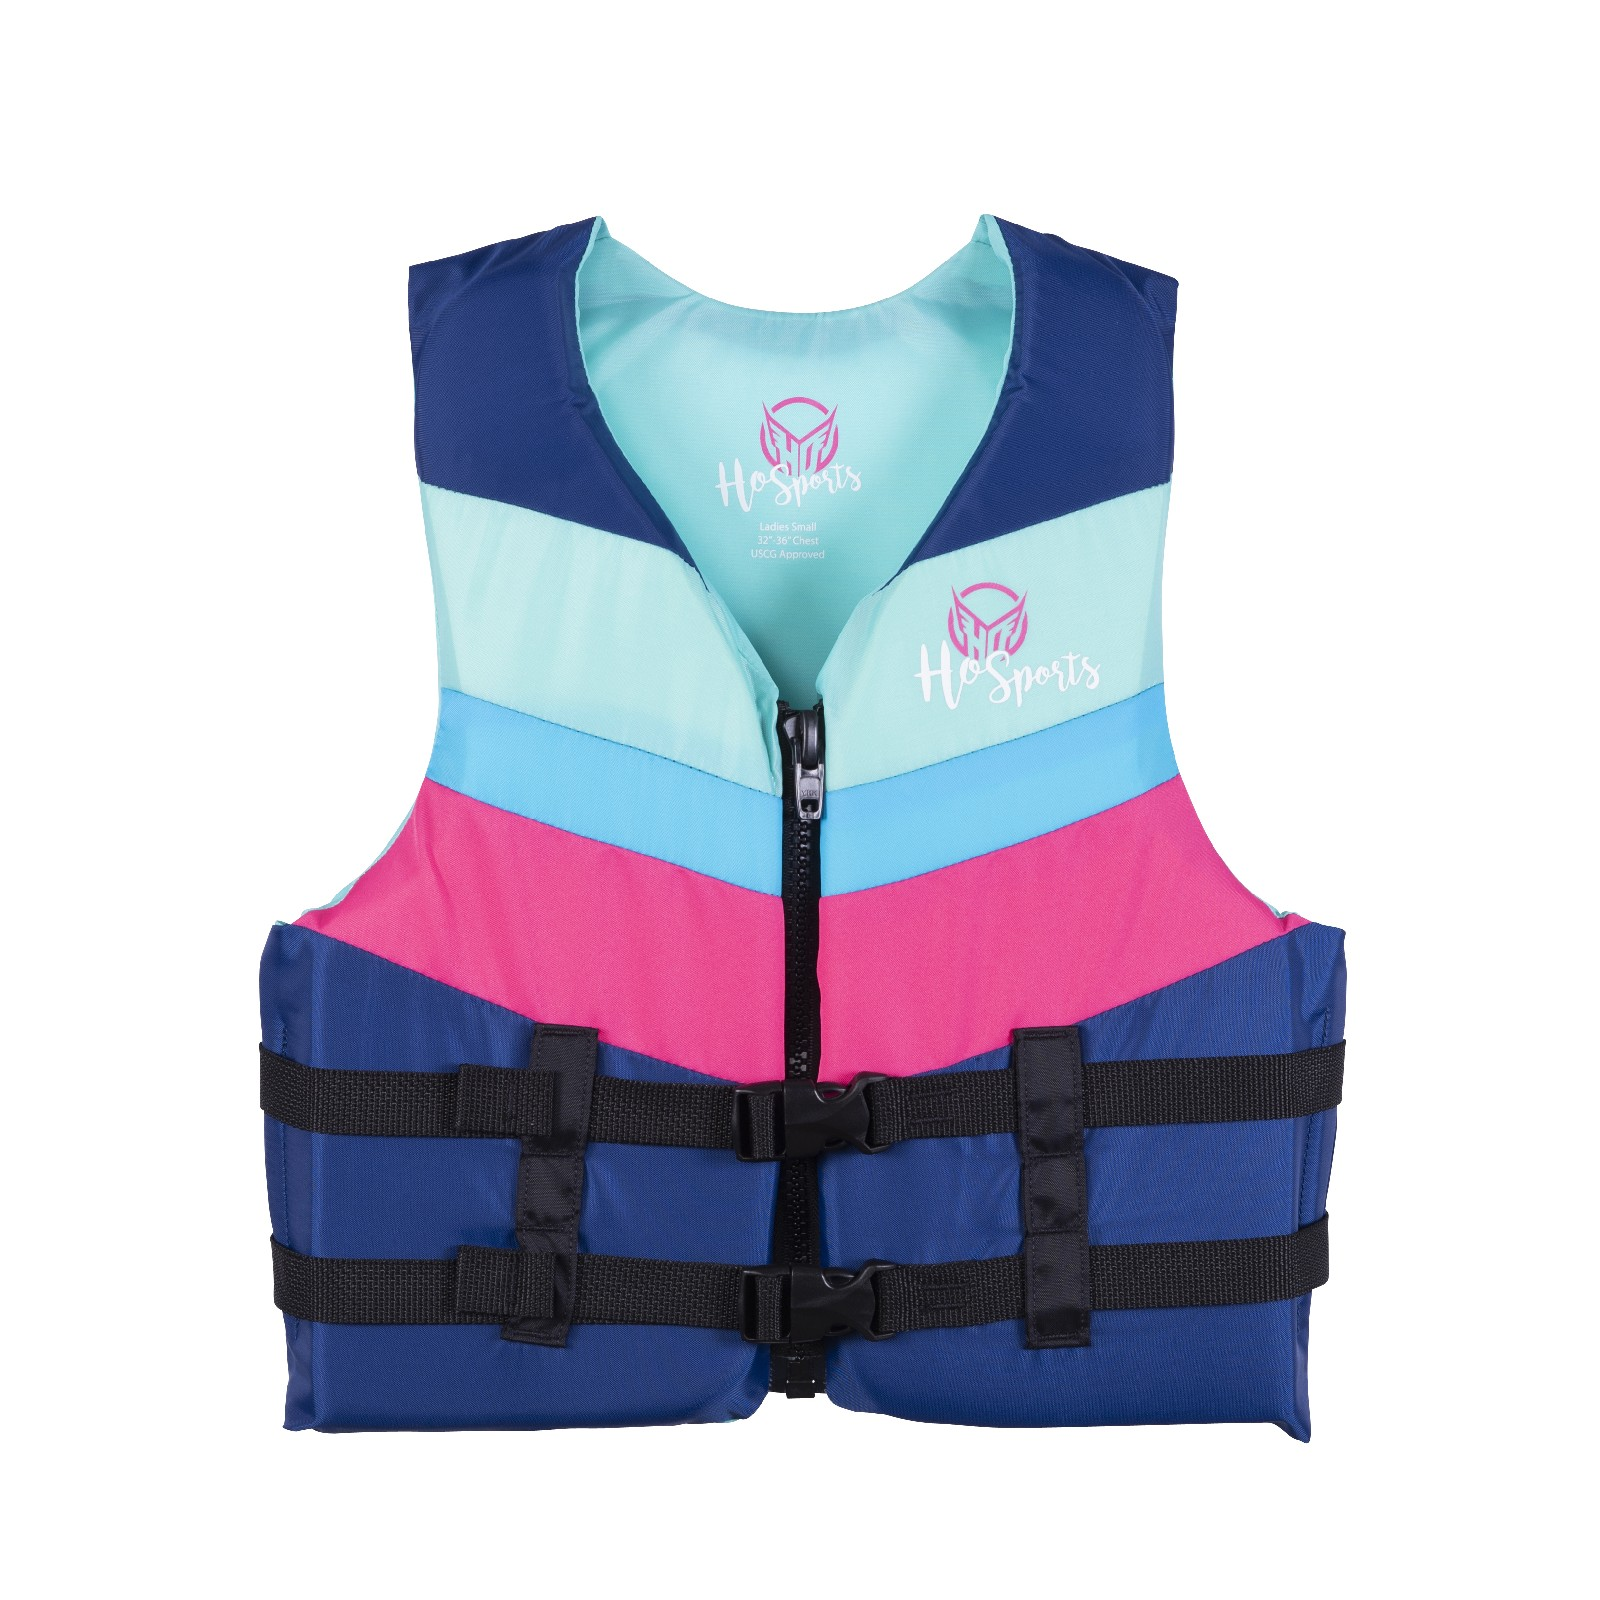 INFINITE WOMEN'S VEST HO SPORTS 2019